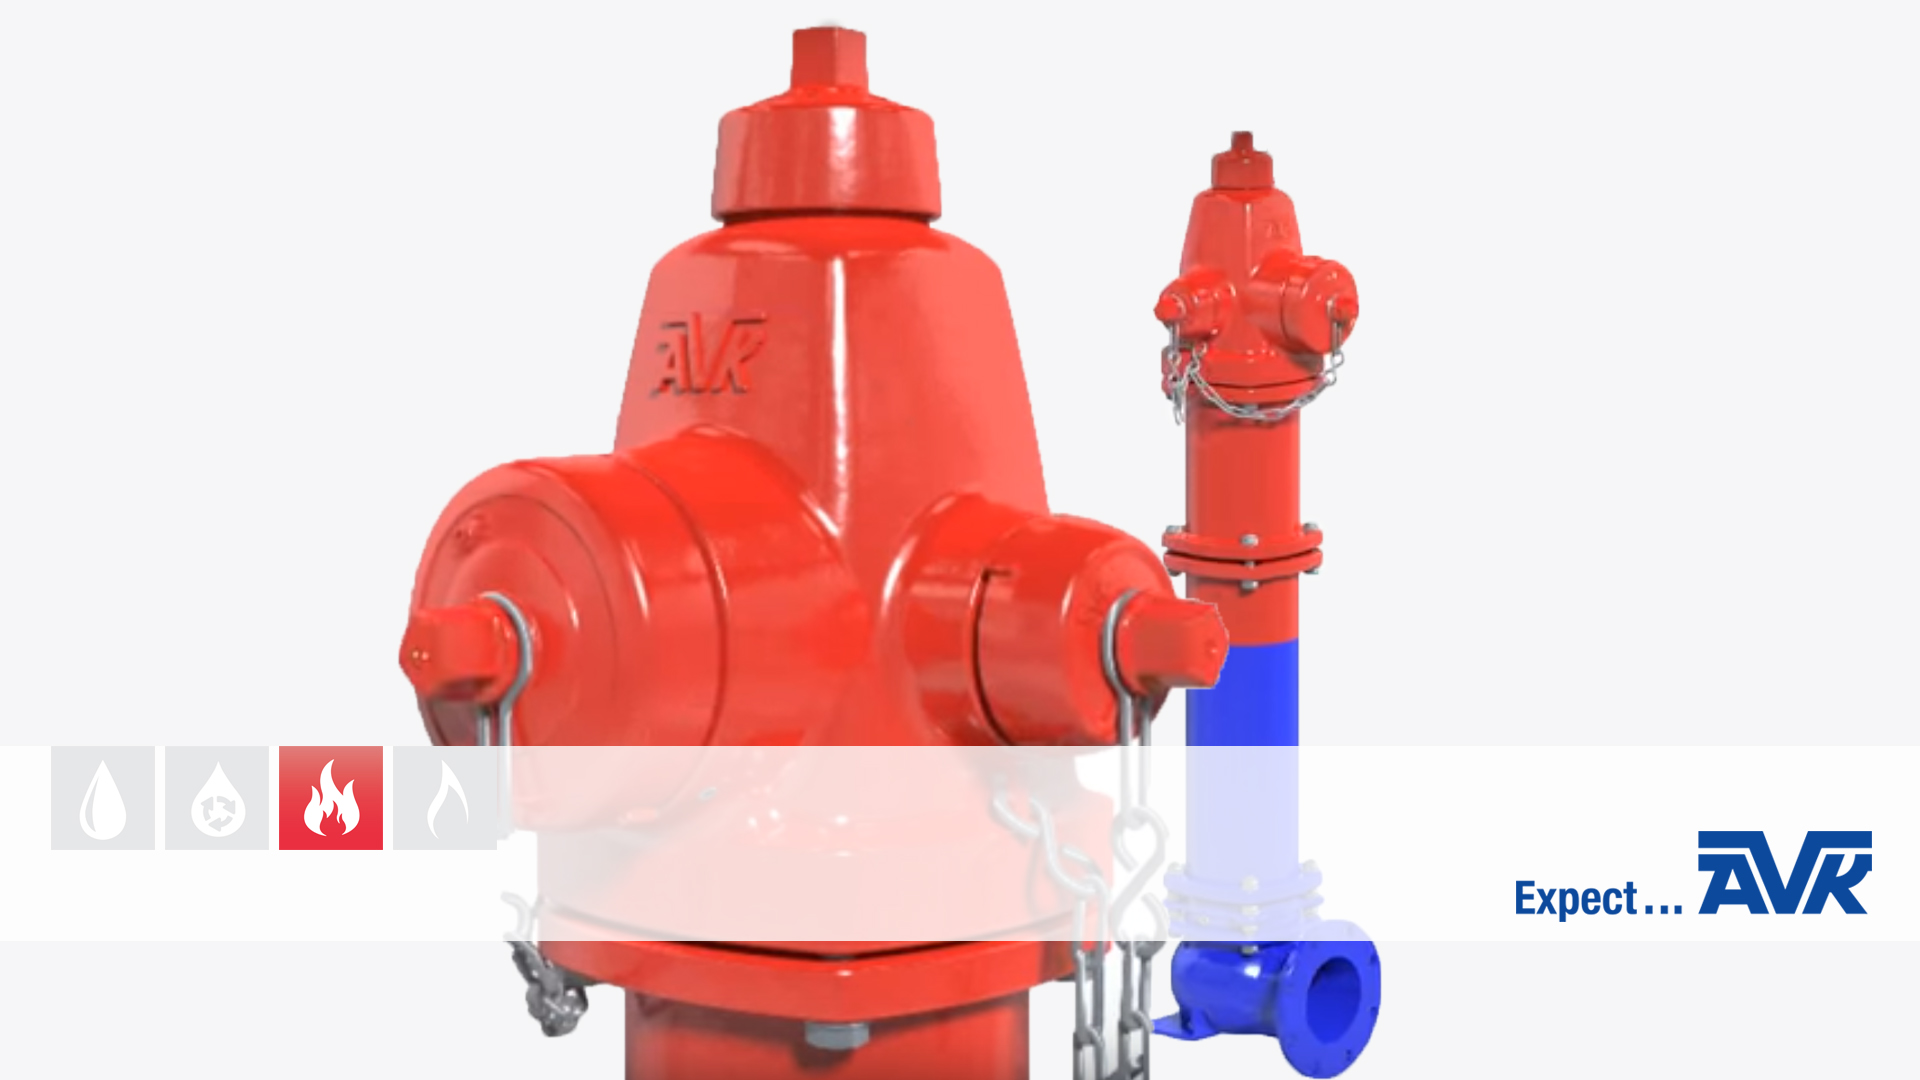 Avk Products For Huge Fire Protection Project Avk